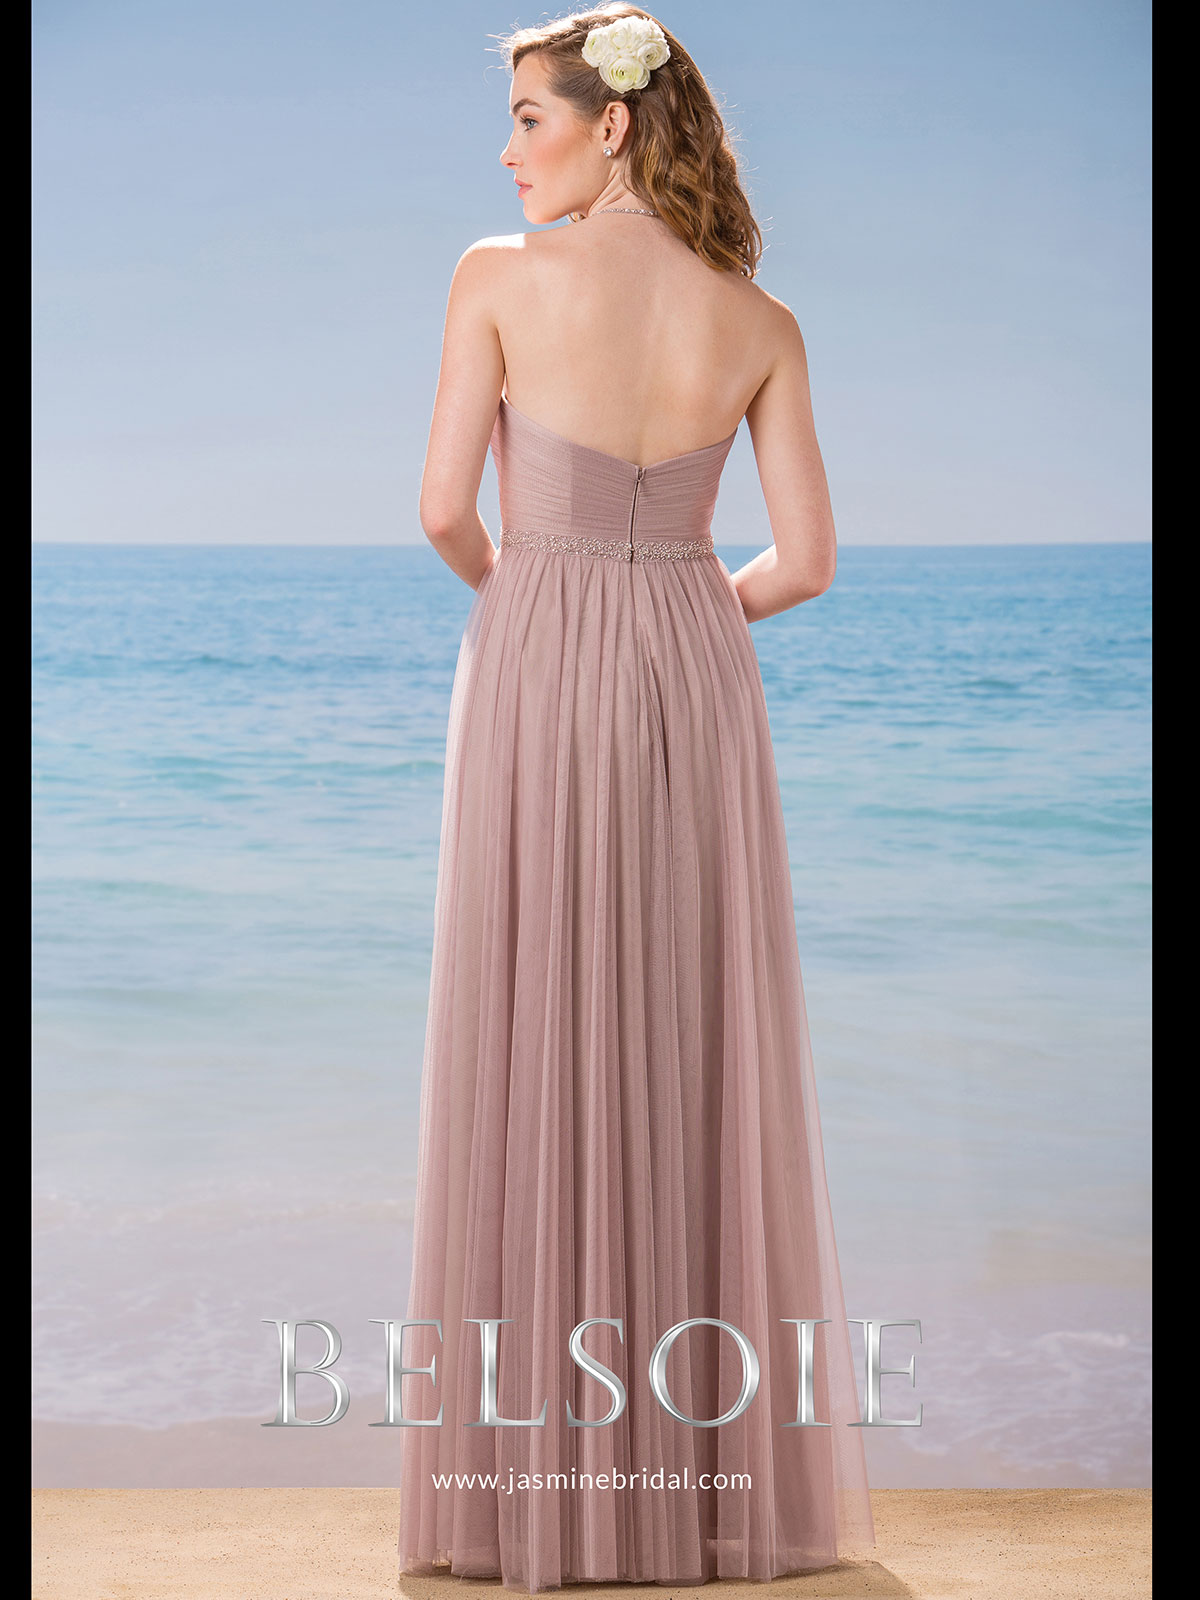 Belsoie l184010 sweetheart tulle a line bridesmaid dress soft tulle a line belsoie bridesmaid dress l184010 ombrellifo Image collections